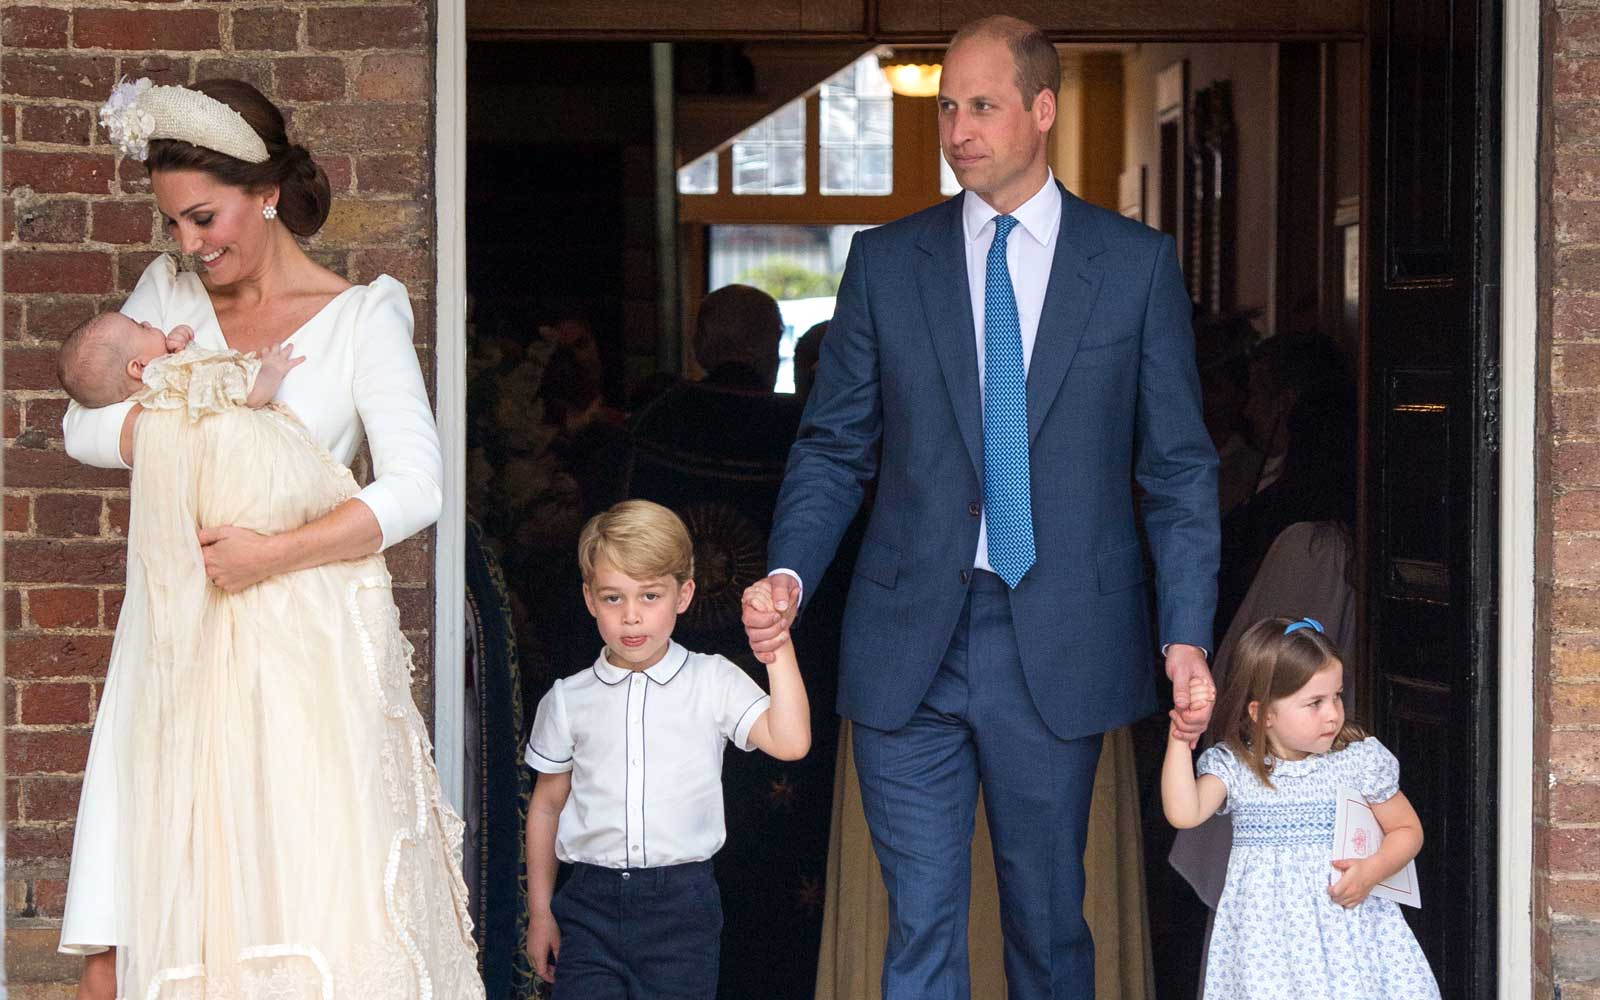 Prince Louis' christening service at the Chapel Royal, St James's Palace, London on July 9, 2018.